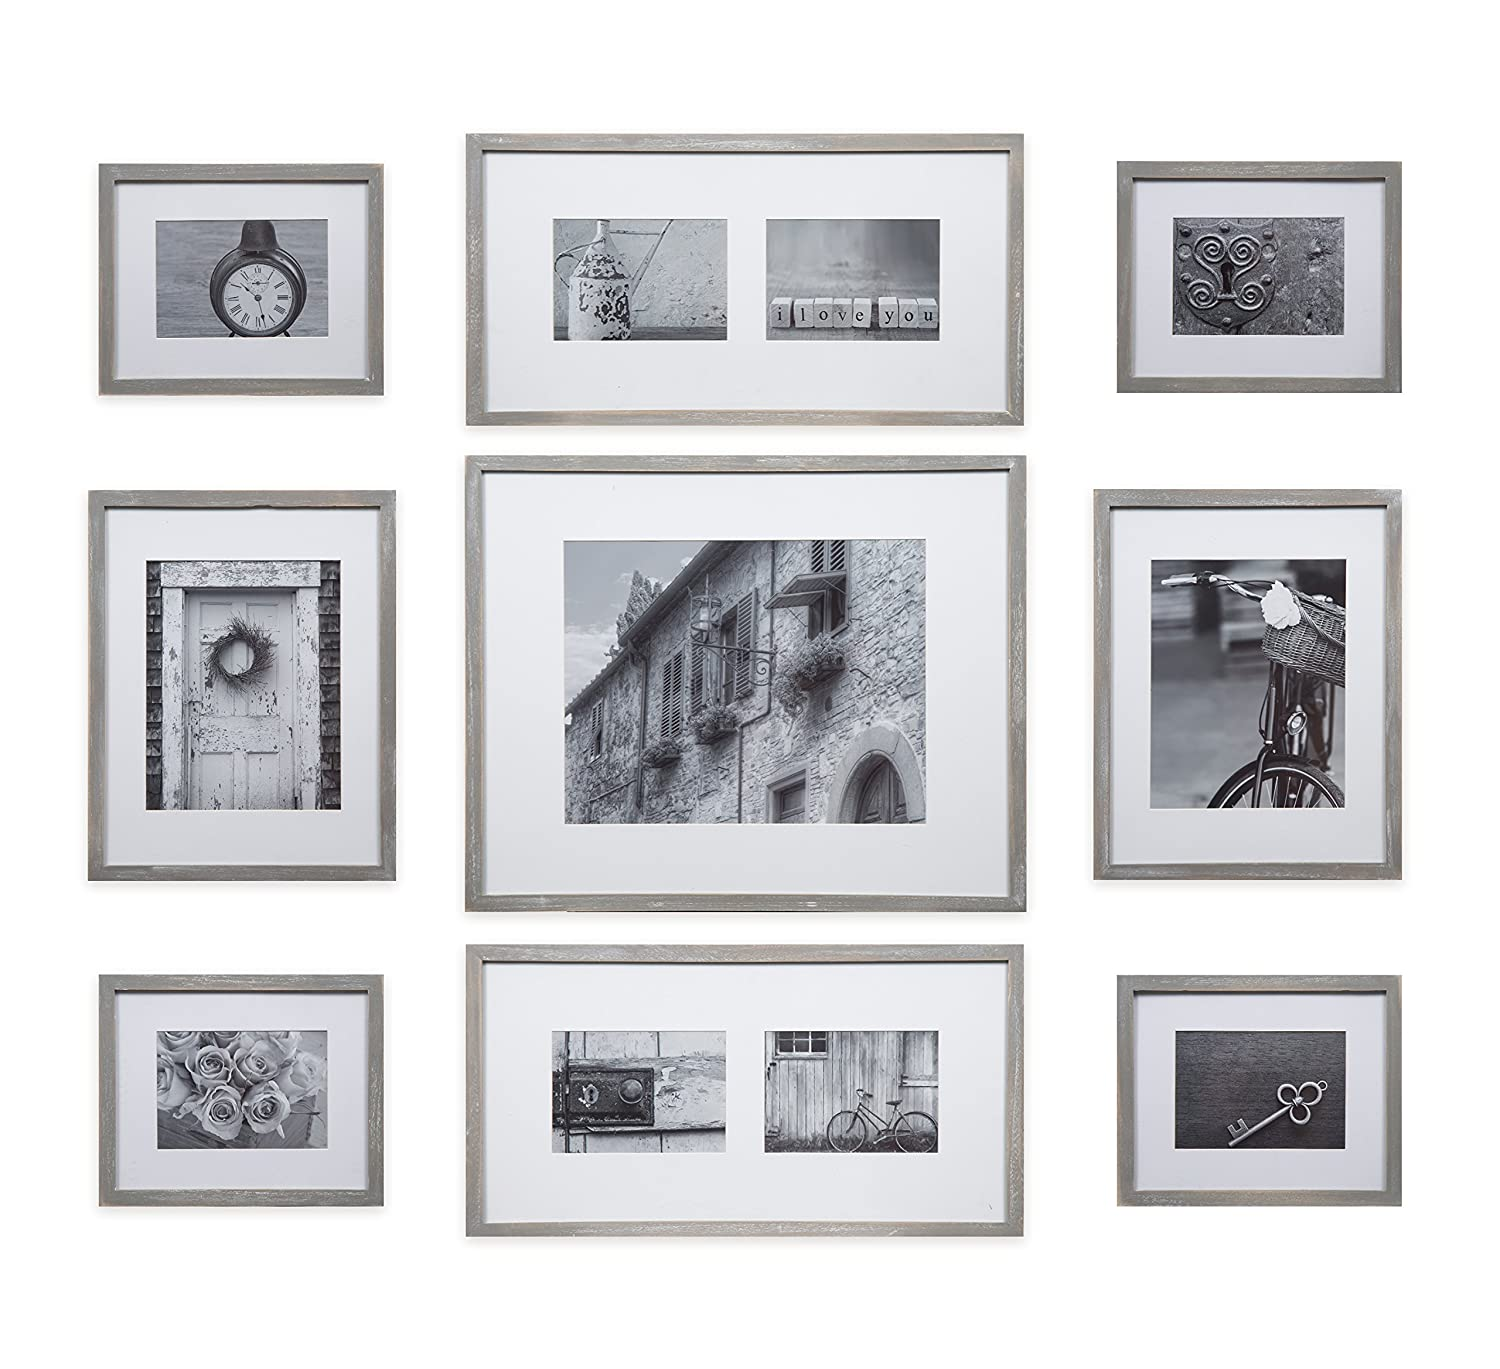 Gallery Perfect Decorative Art Prints & Hanging Template 9 Piece Greywash Wood Photo Frame Wall Gallery Kit Grey